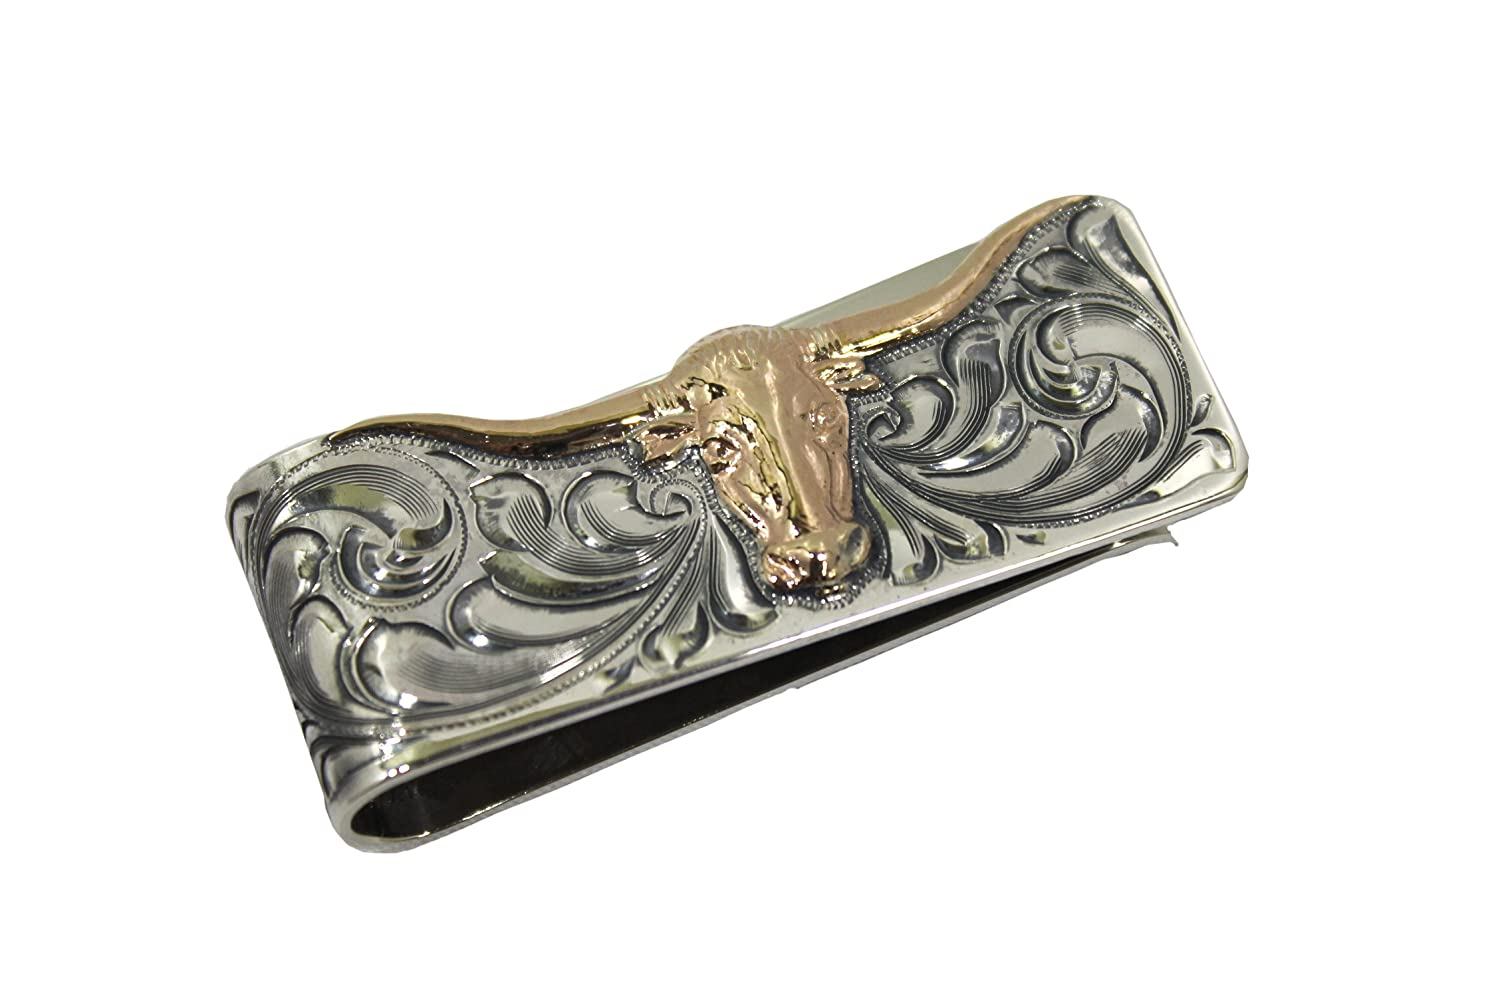 e310eceb0412 Engraved Western Money Clip with Silhouetted Longhorn at Amazon ...